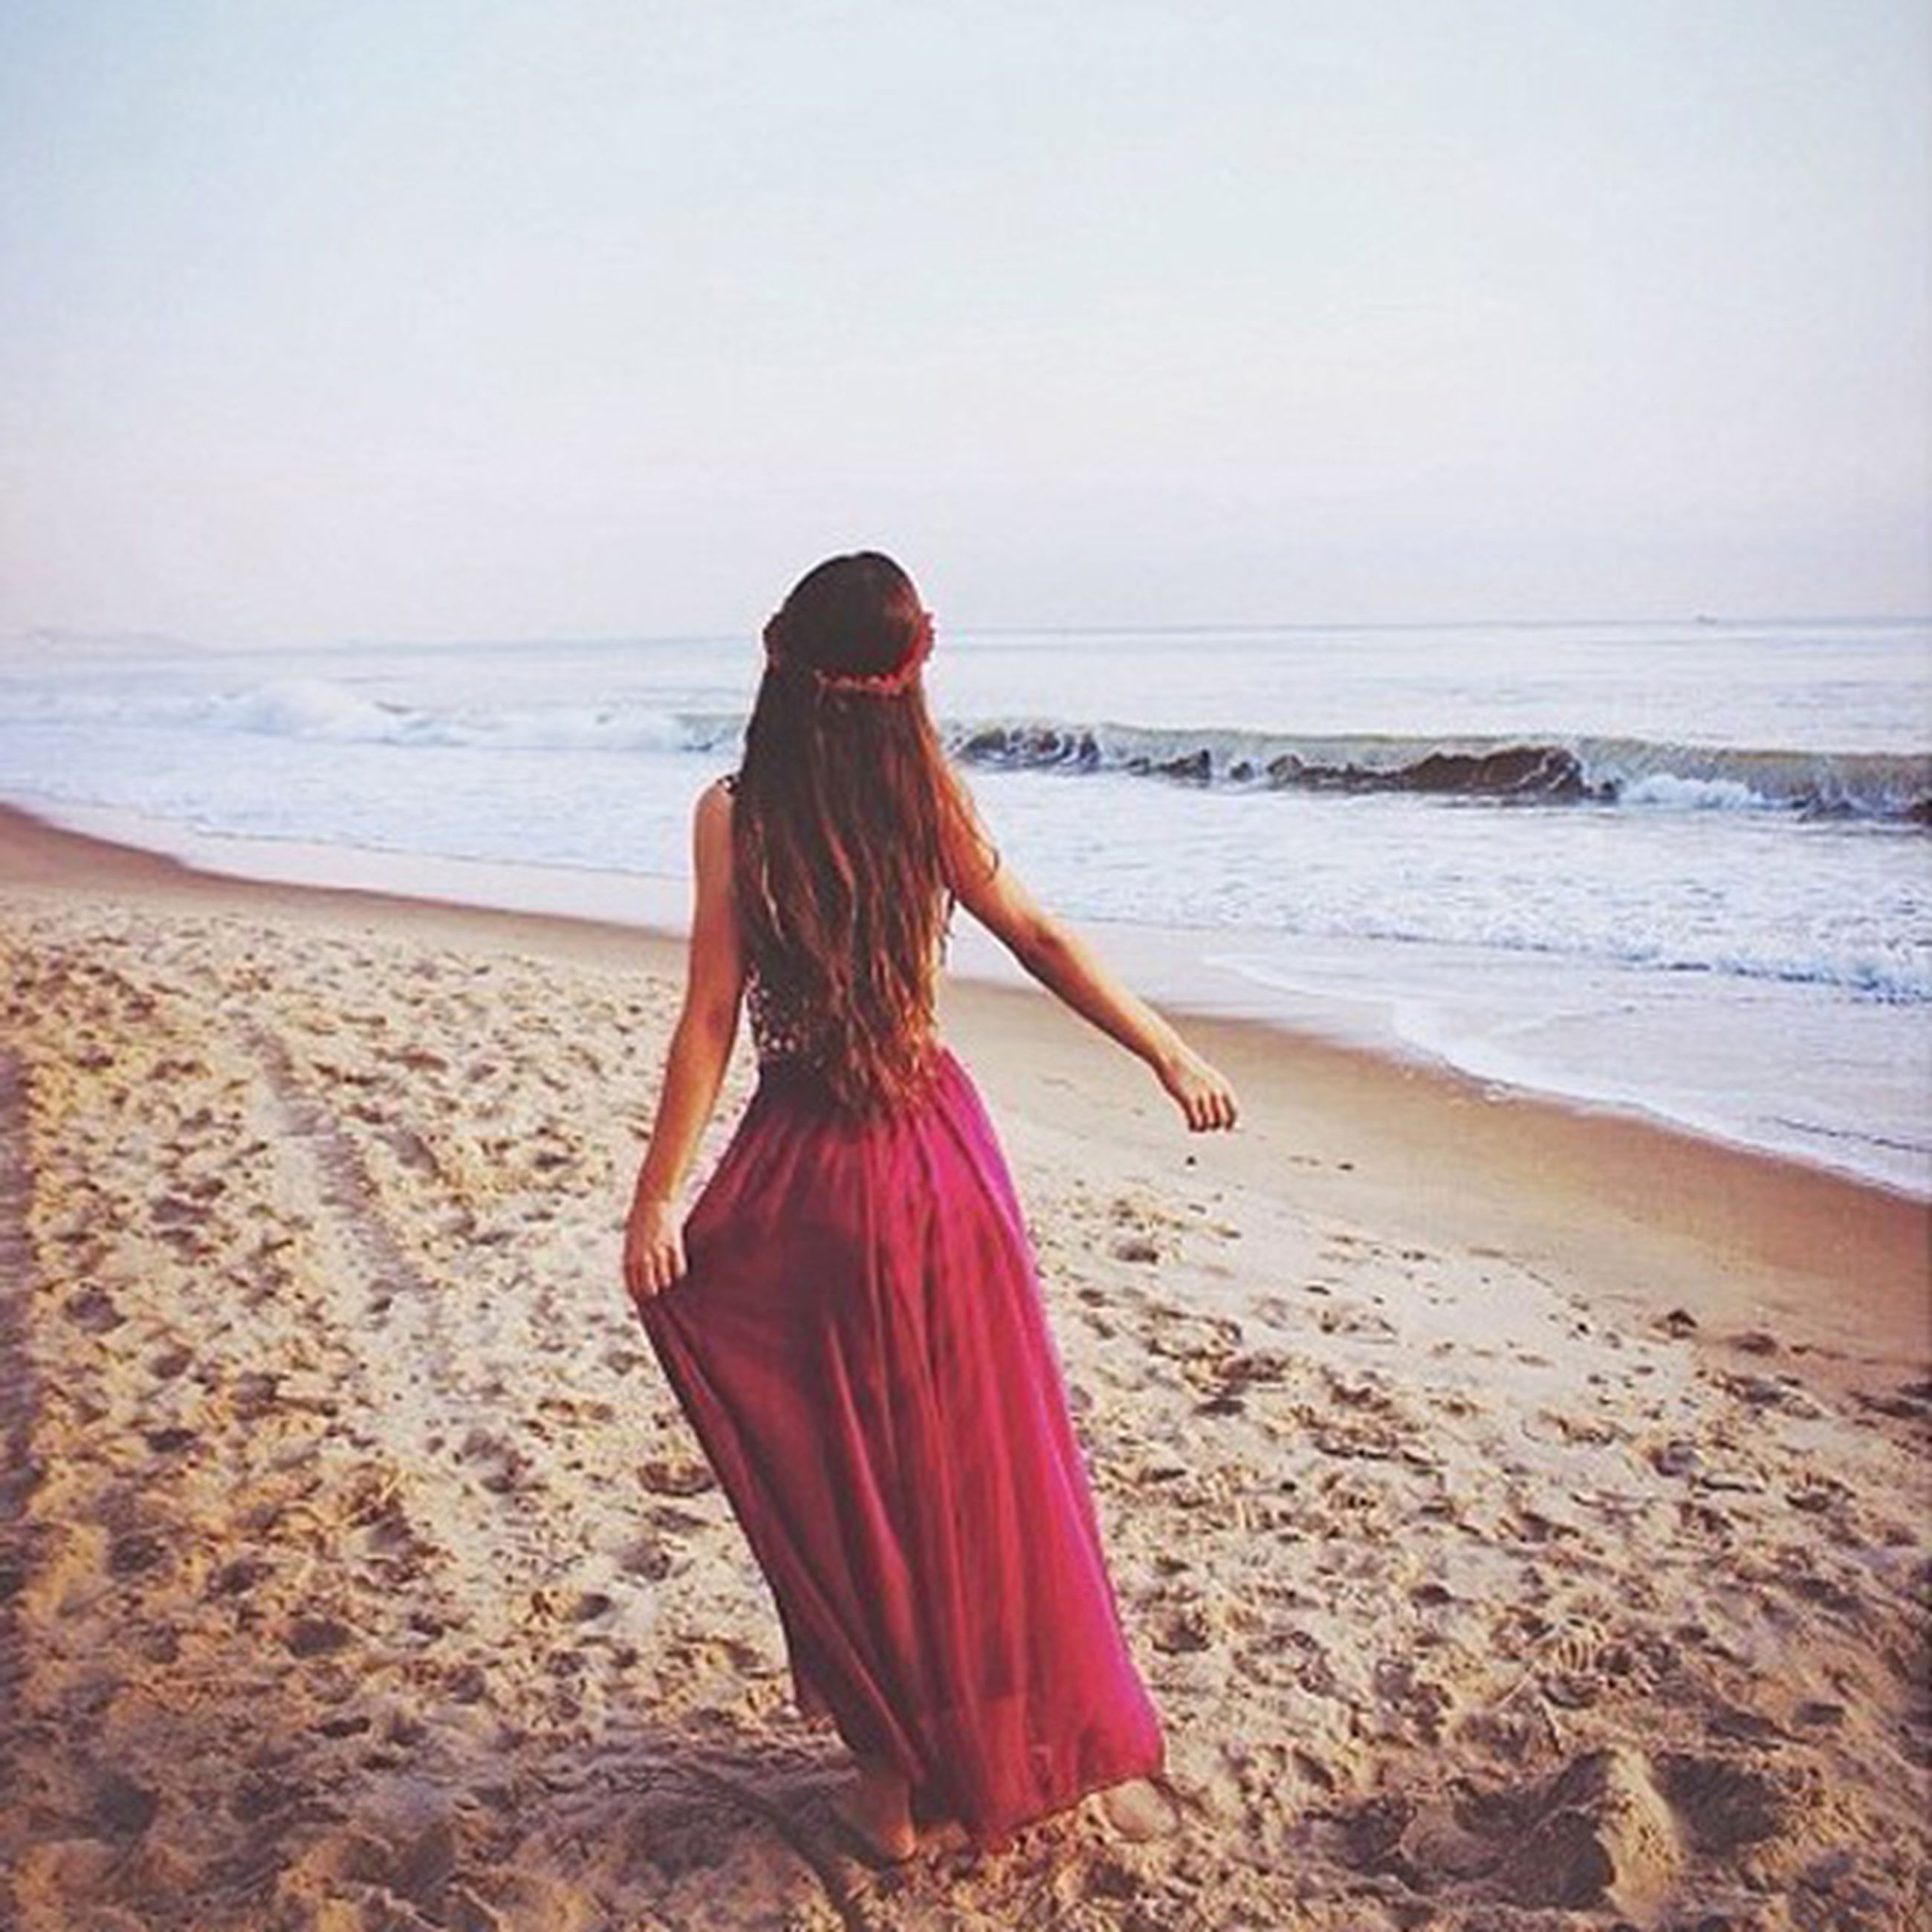 beach, sea, horizon over water, shore, water, standing, sand, clear sky, tranquil scene, vacations, scenics, casual clothing, beauty in nature, rear view, tranquility, three quarter length, getting away from it all, long hair, nature, person, weekend activities, summer, coastline, sky, day, escapism, remote, outdoors